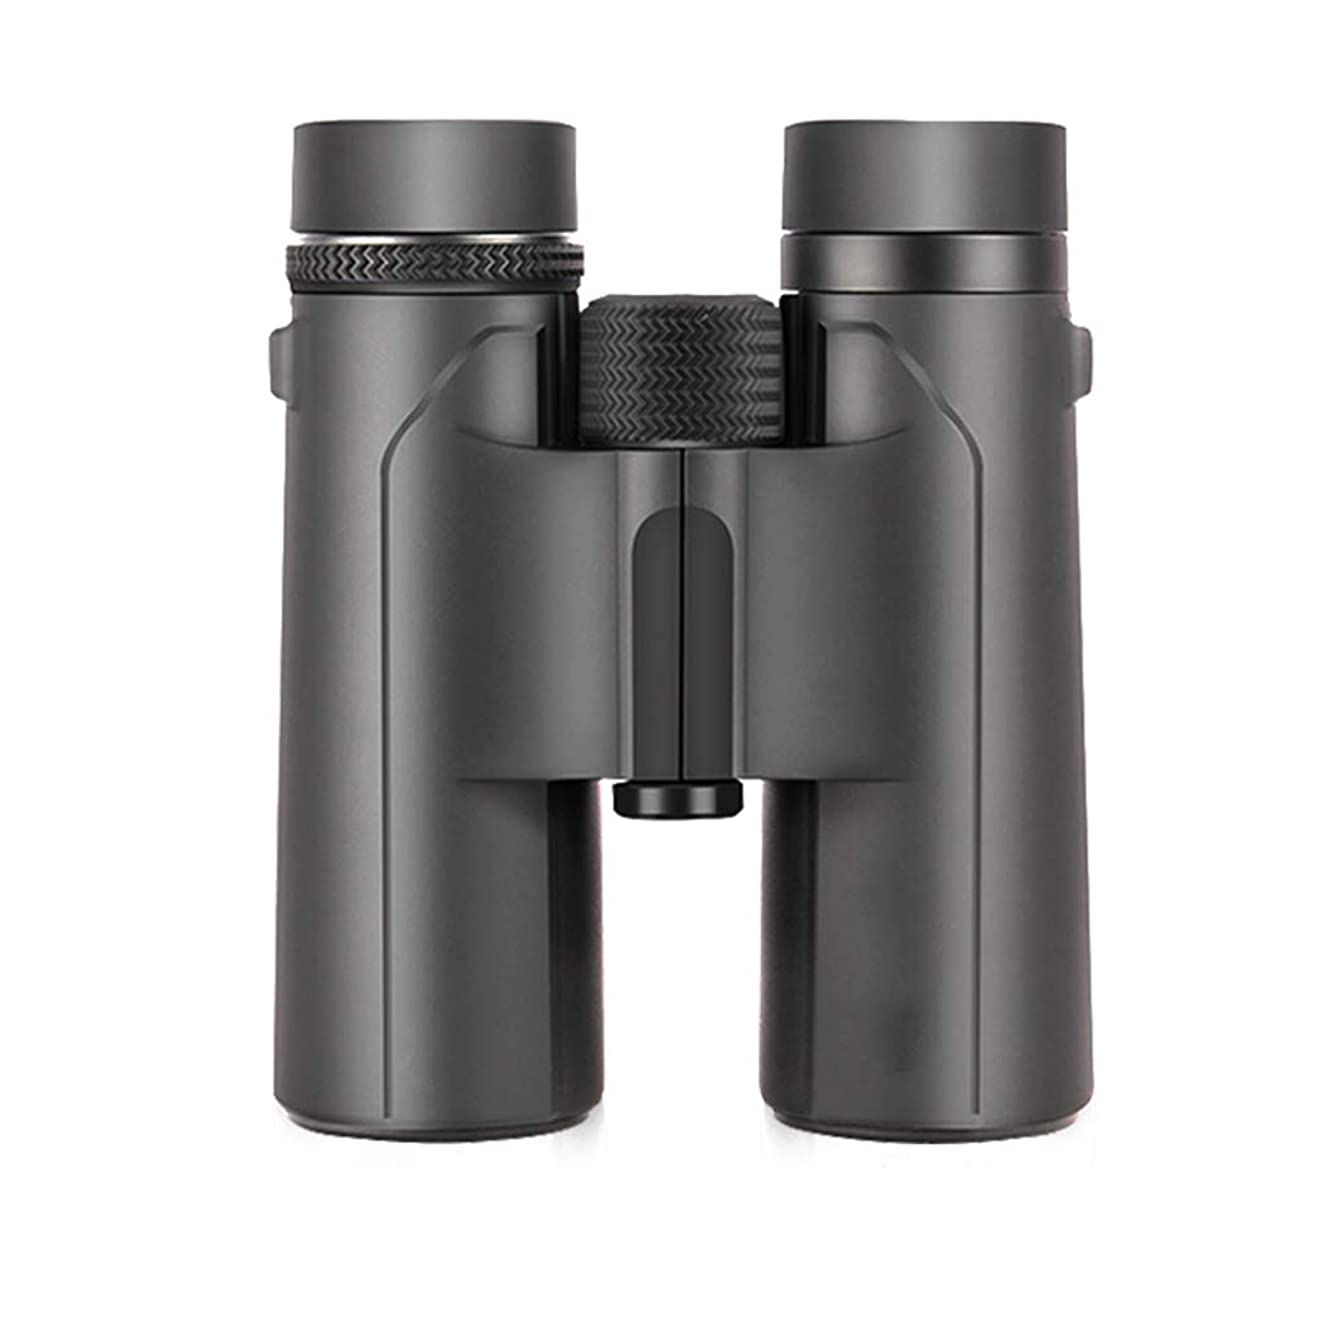 DingHome-m Low-Light Night Vision Binoculars, High-Definition Large Eyepieces, Large Objective Lens Bak4 Prism, Suitable for Bird Watching, Outdoor Games and Concerts